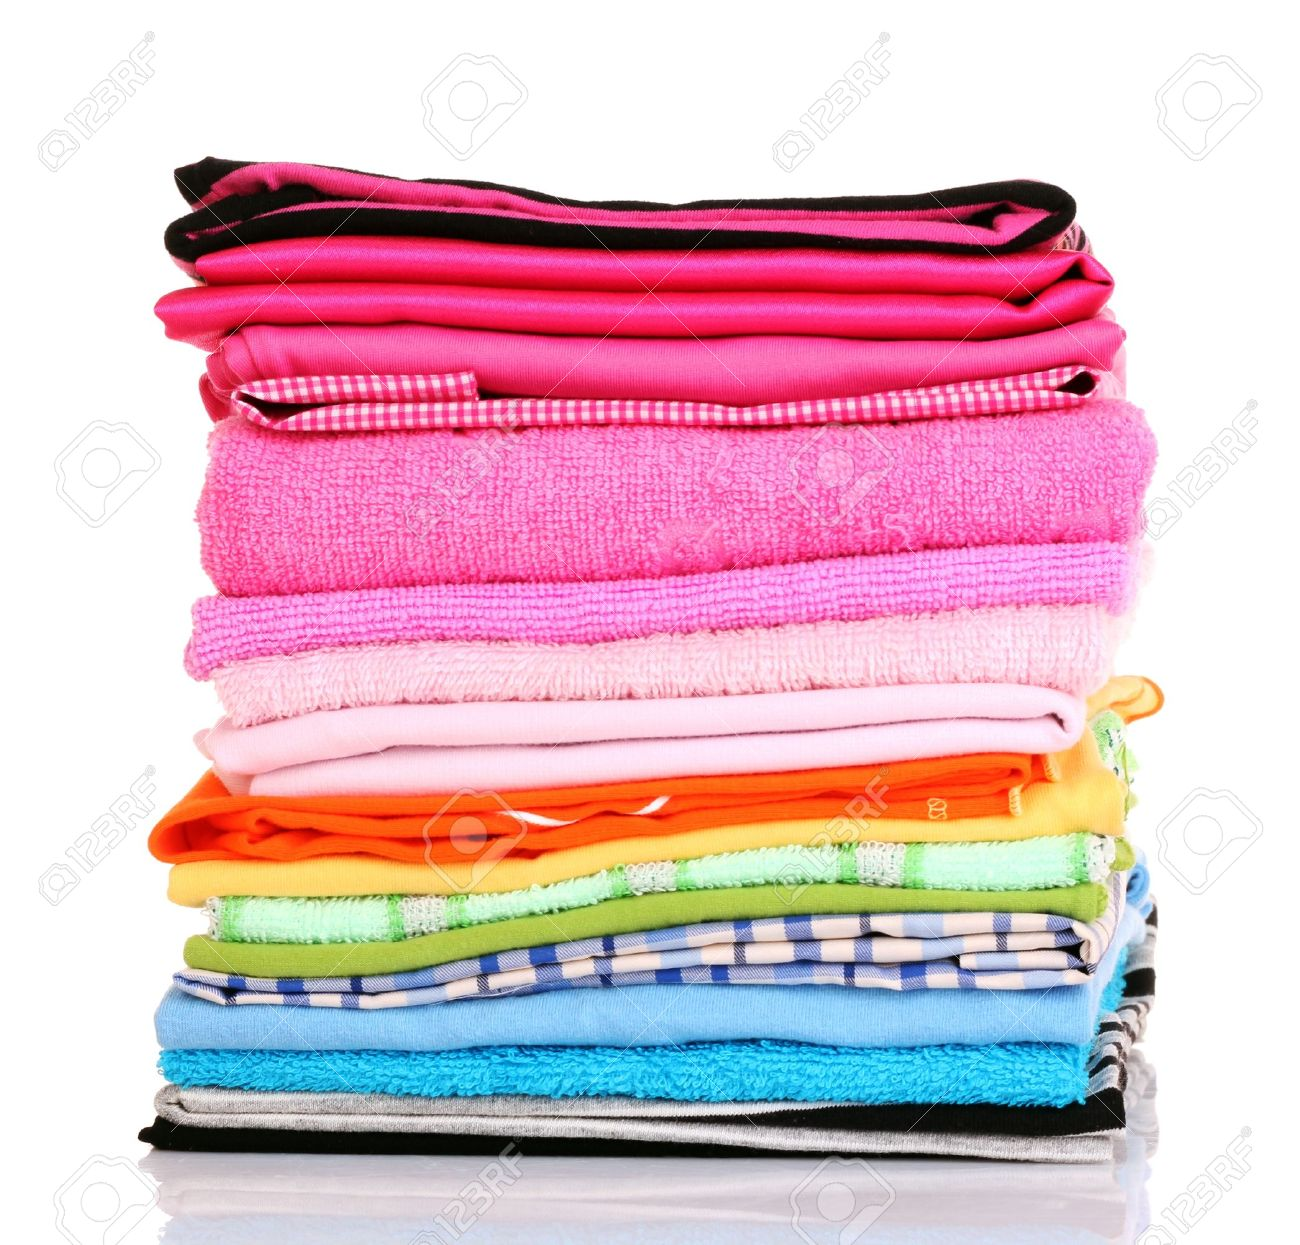 Pile of colorful clothes over white background Stock Photo - 9473592